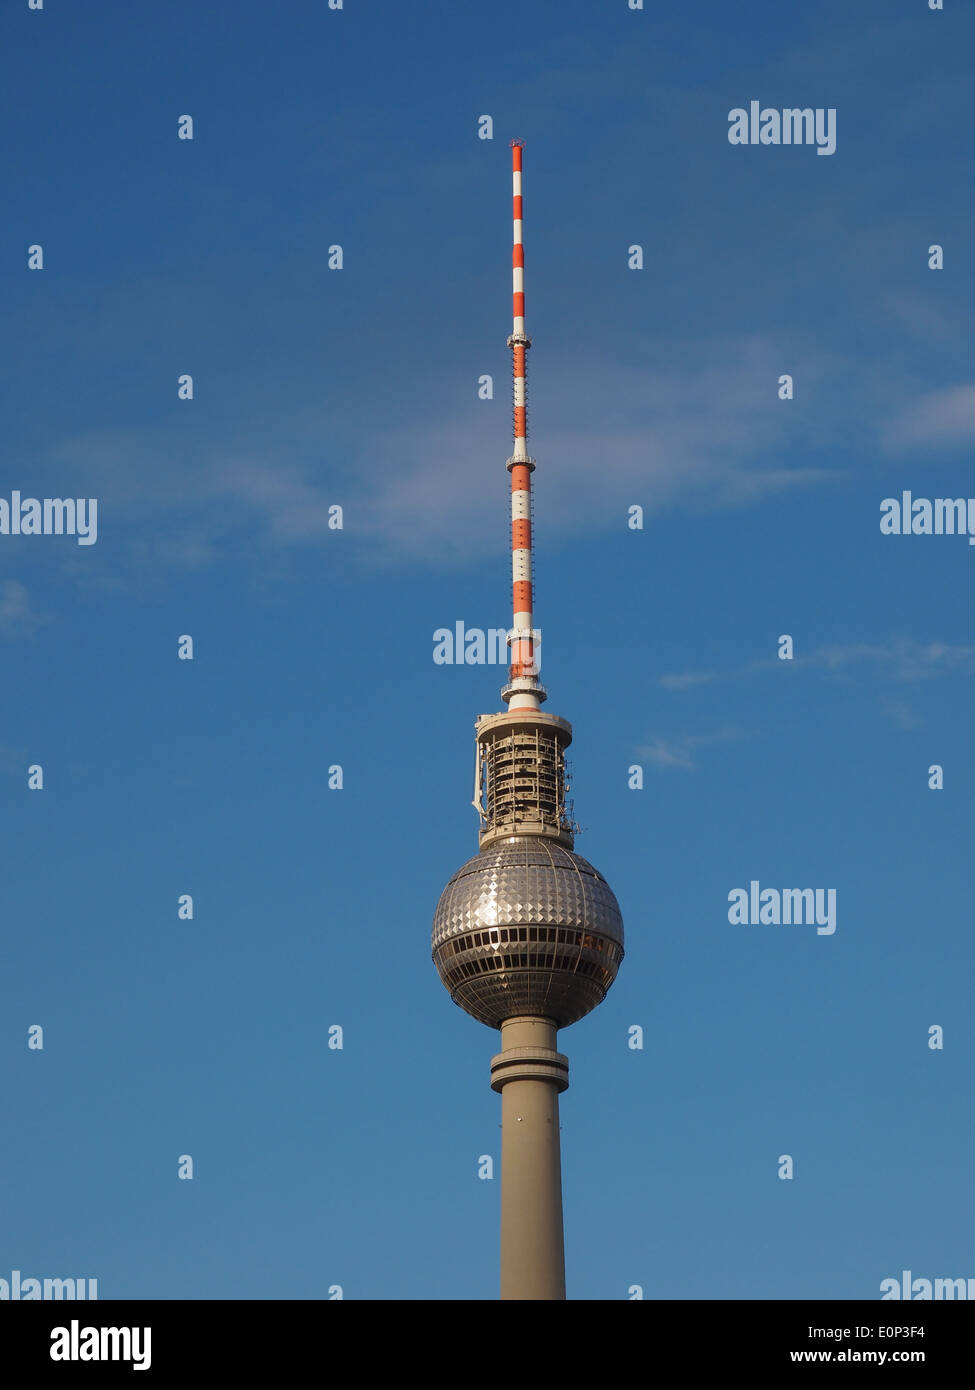 Alex Turm Turm Tv Stock Photos Turm Tv Stock Images Alamy